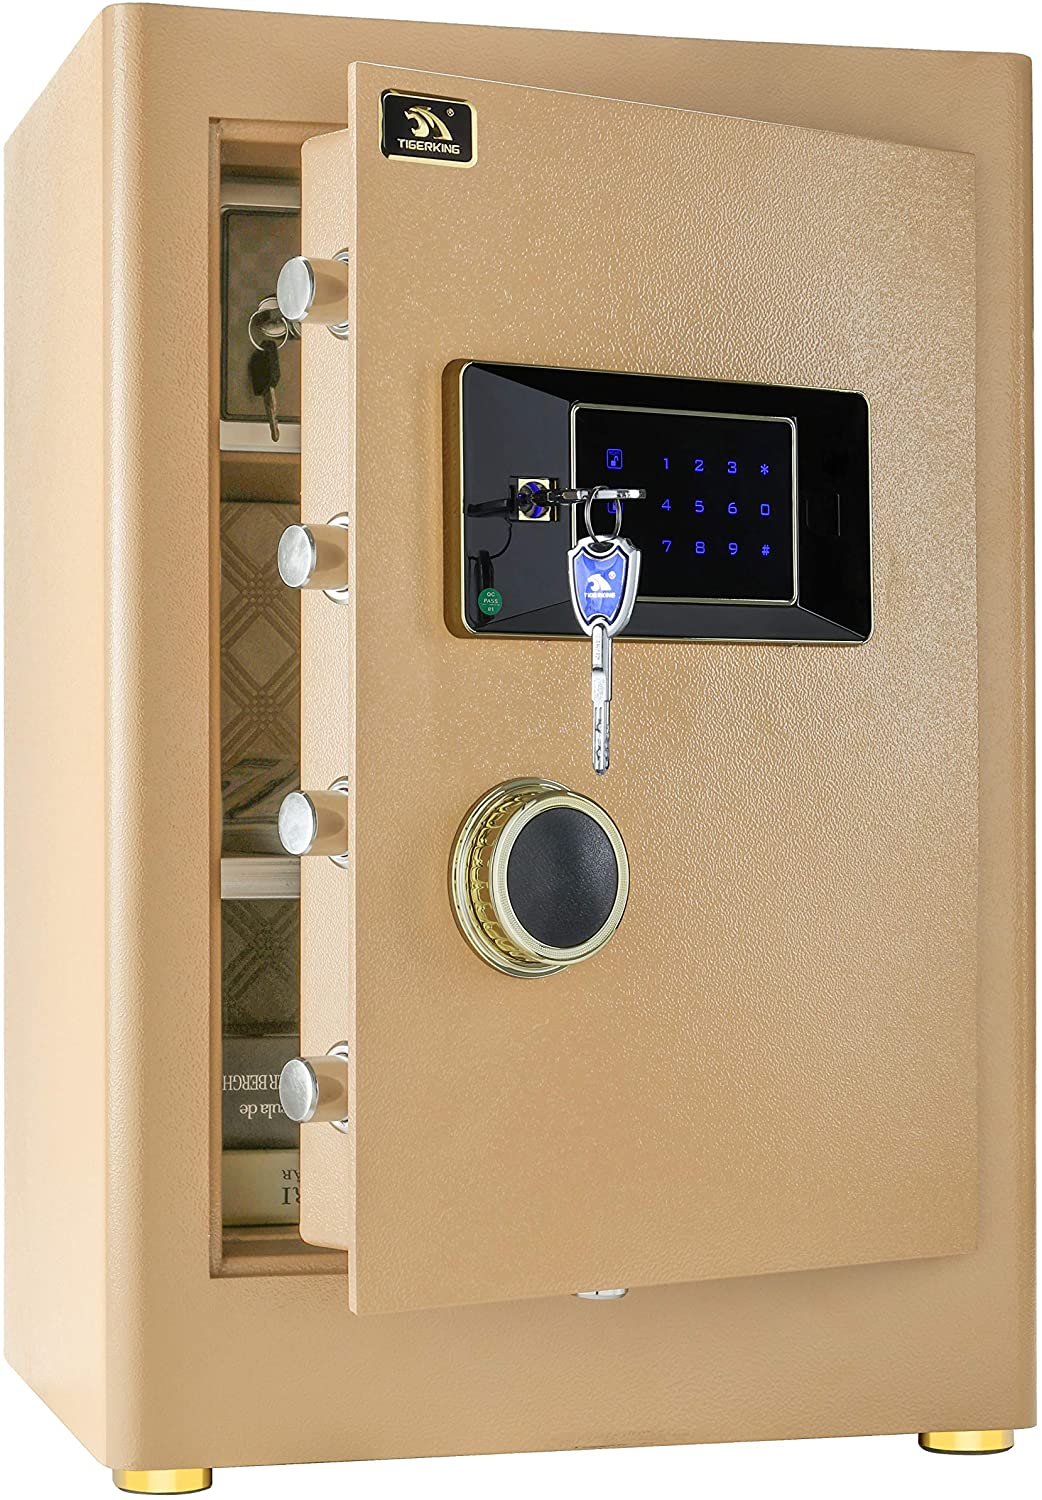 TIGERKING Digital Security Safe Box Home Limited price sale Atlanta Mall Safet for Double Office